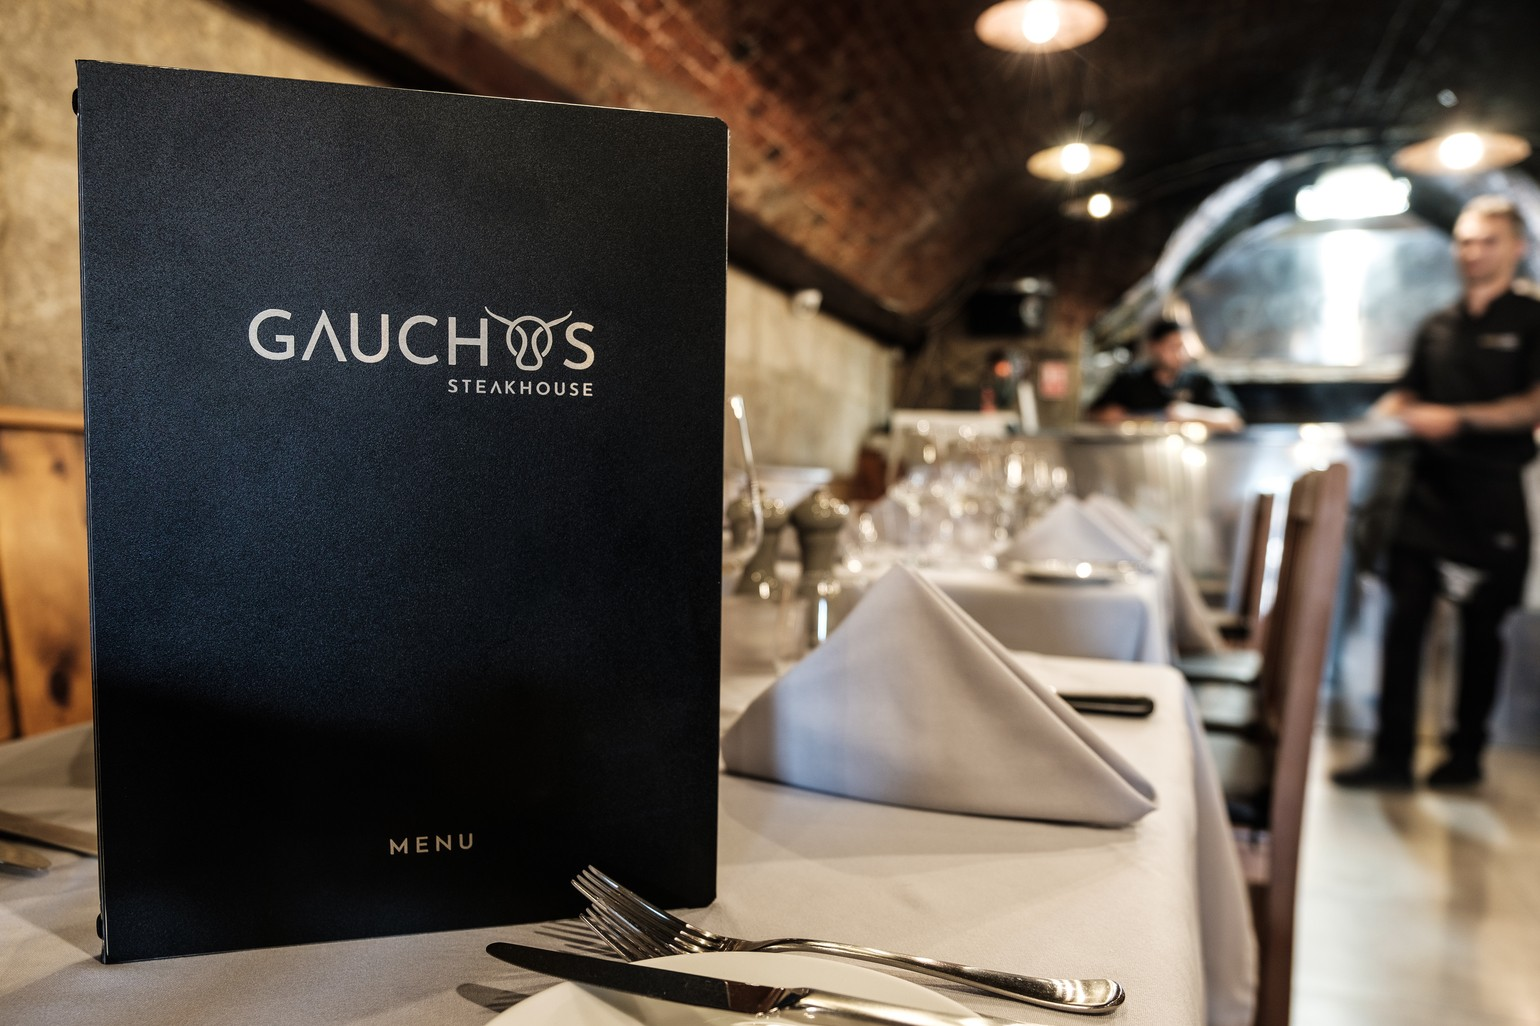 Gauchos-menu-stood-up-on-table